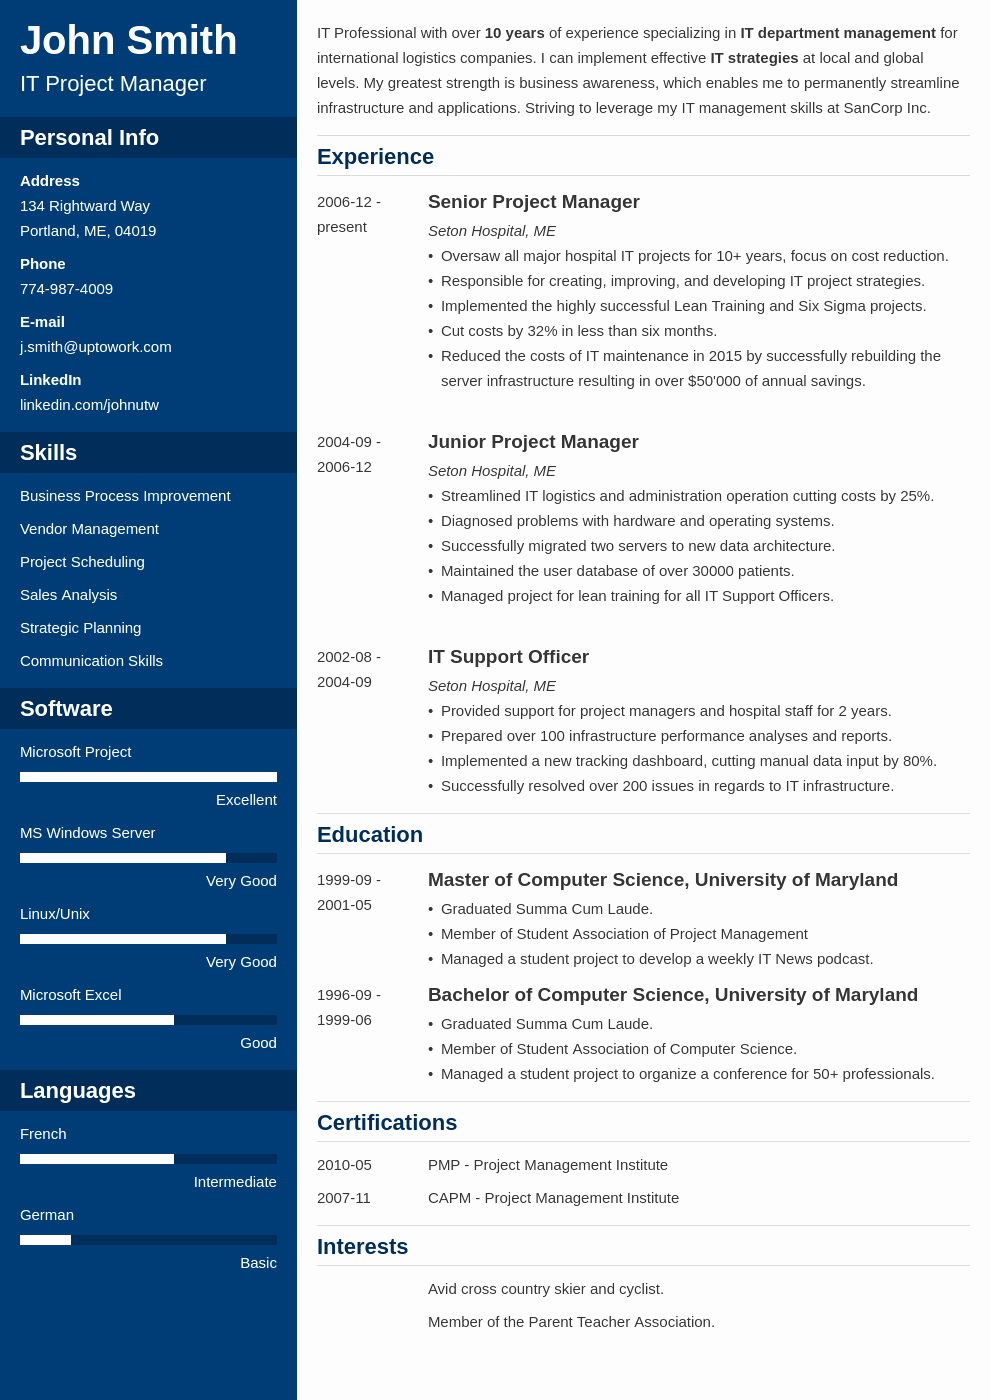 A Template for A Resume Inspirational 20 Resume Templates [download] Create Your Resume In 5